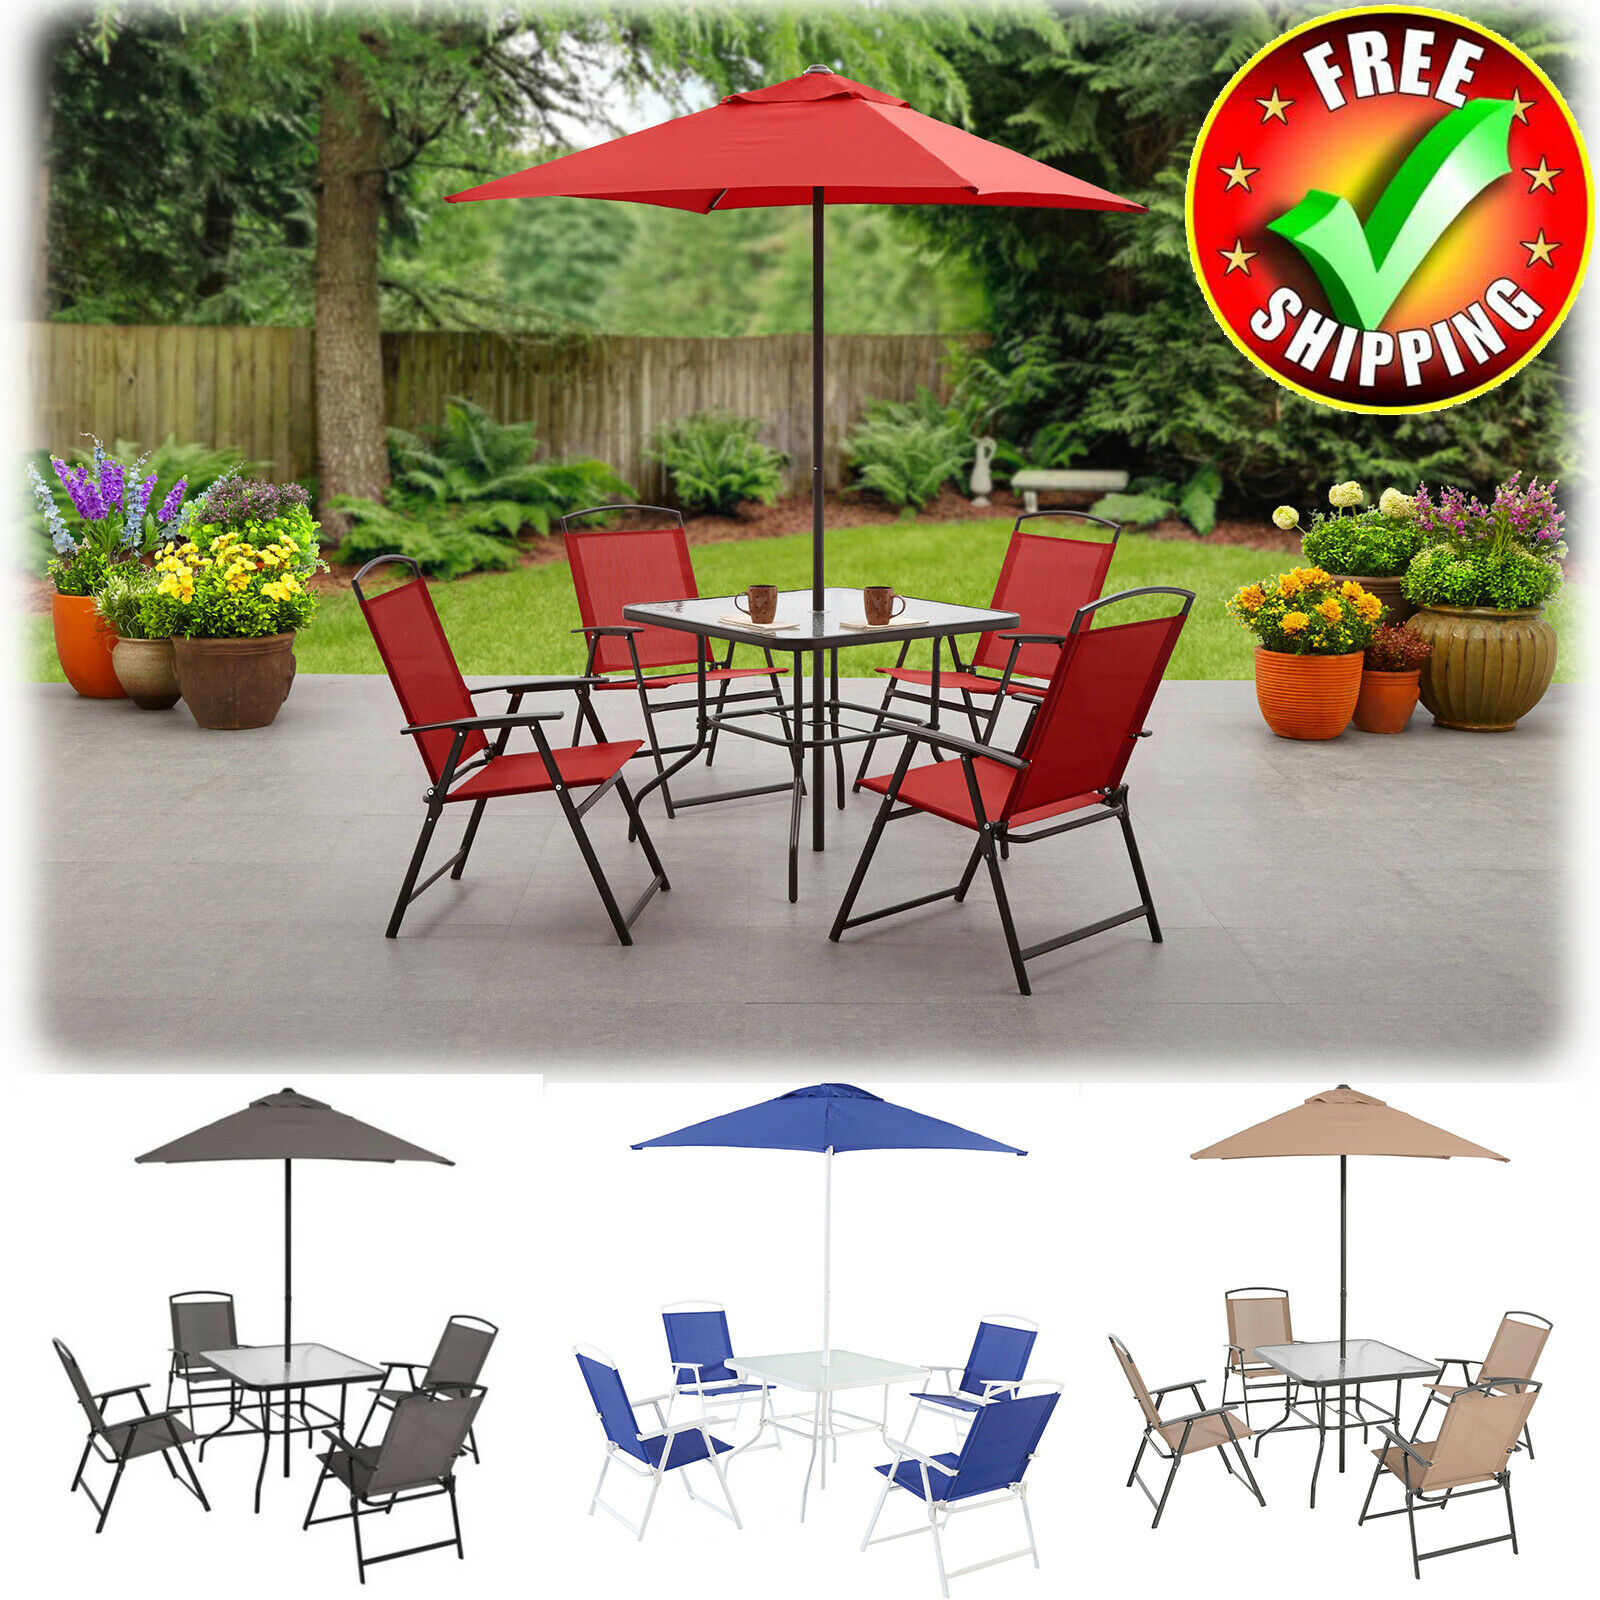 Garden Furniture - Patio Table And Chairs Umbrella Dining Set Outdoor Lawn Garden Folding Furniture